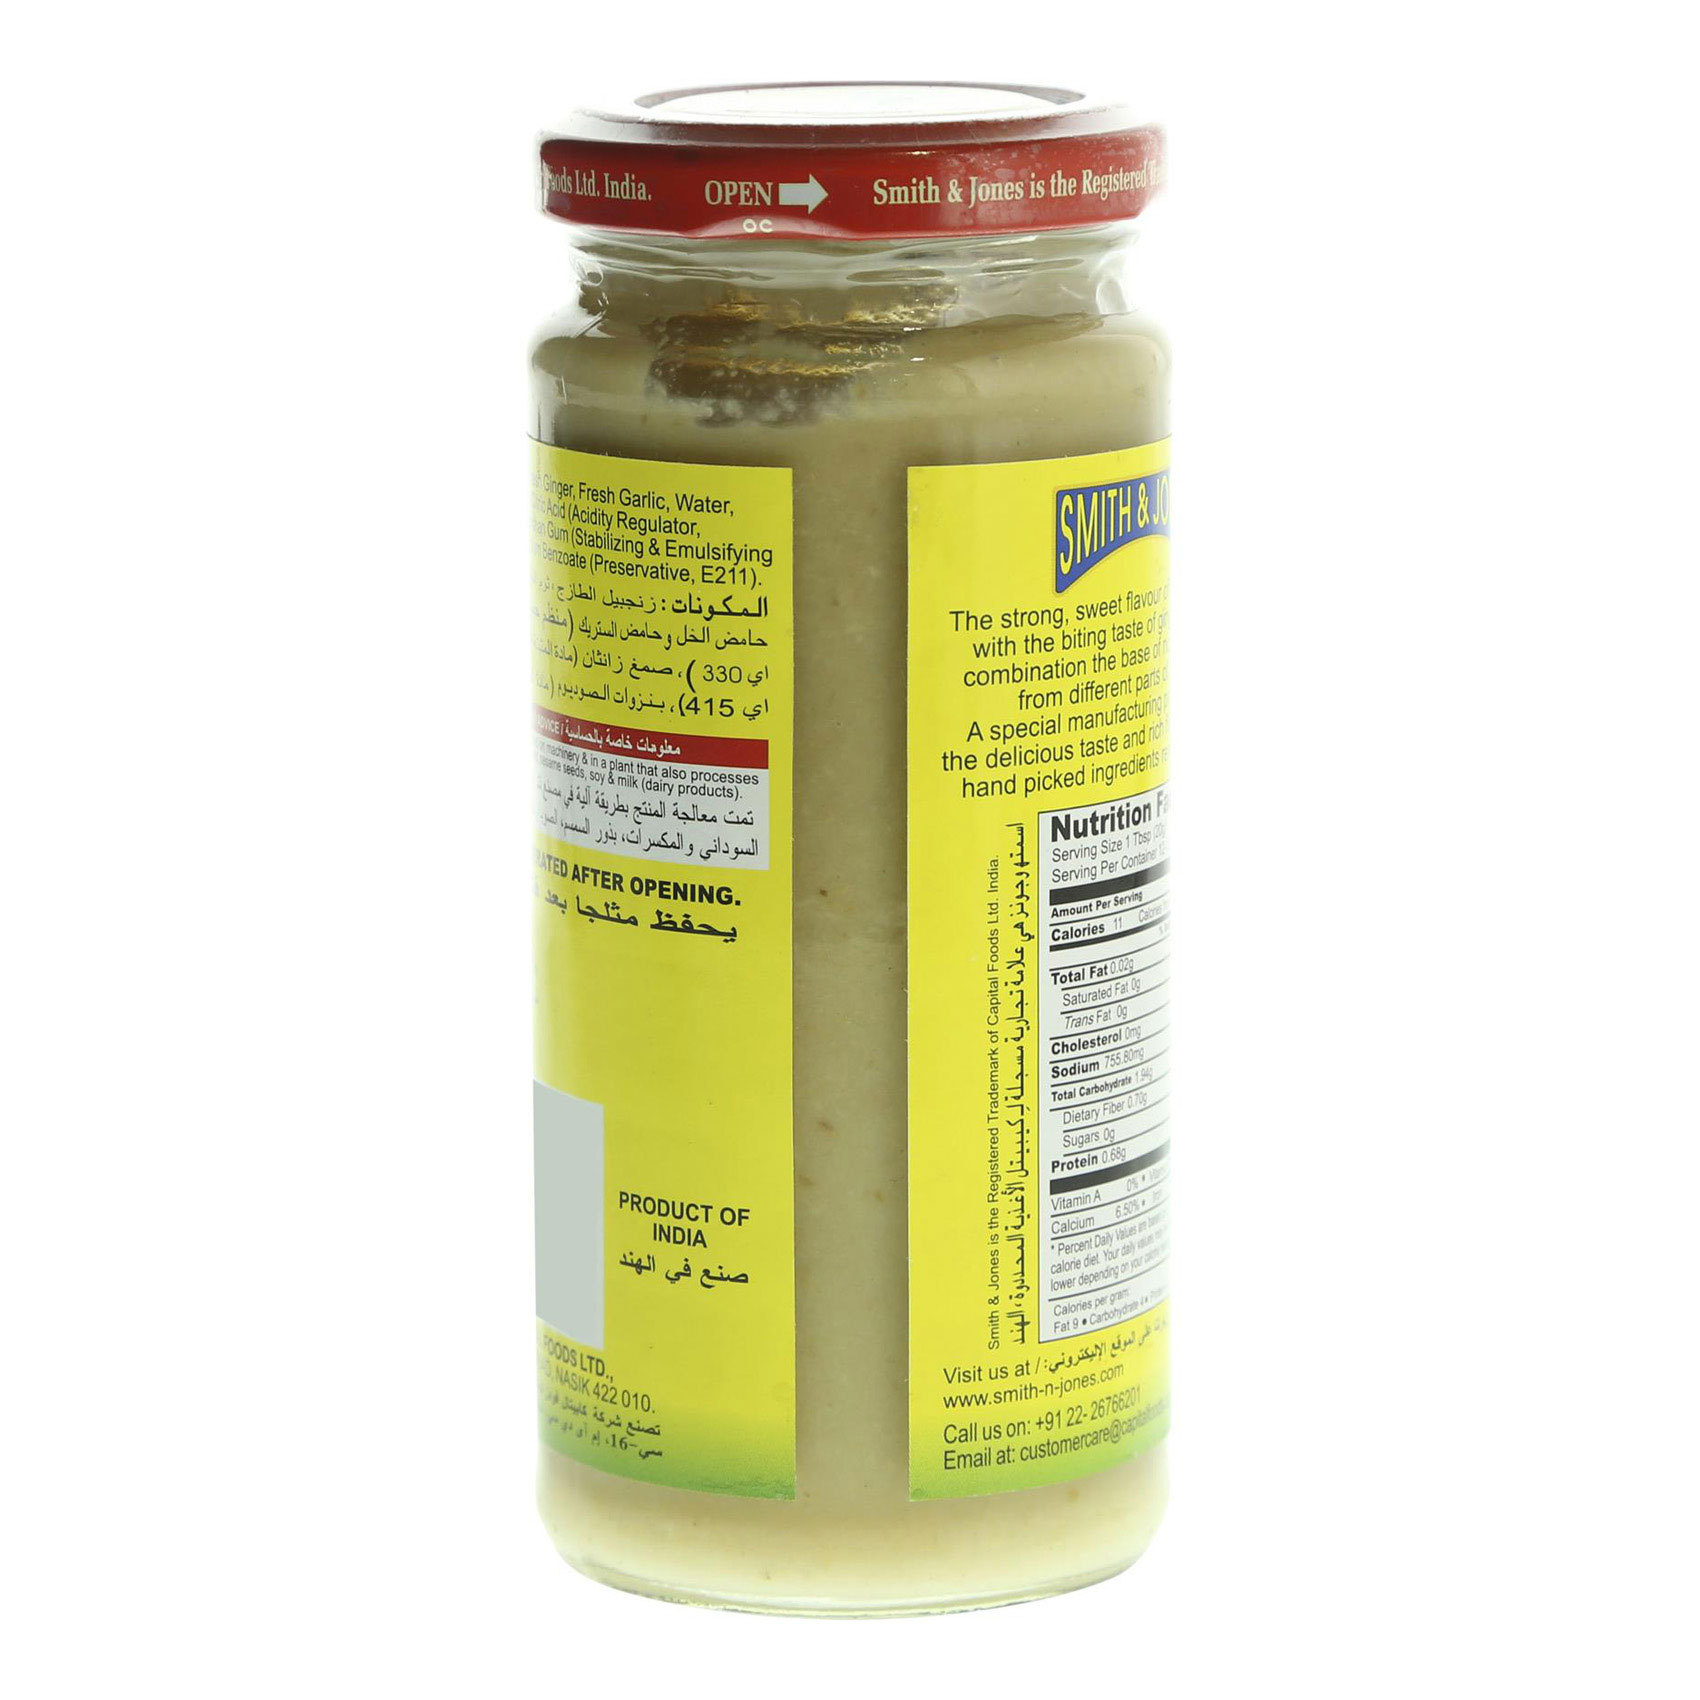 SMITH&JONES GNGR GARLIC PASTE 250G